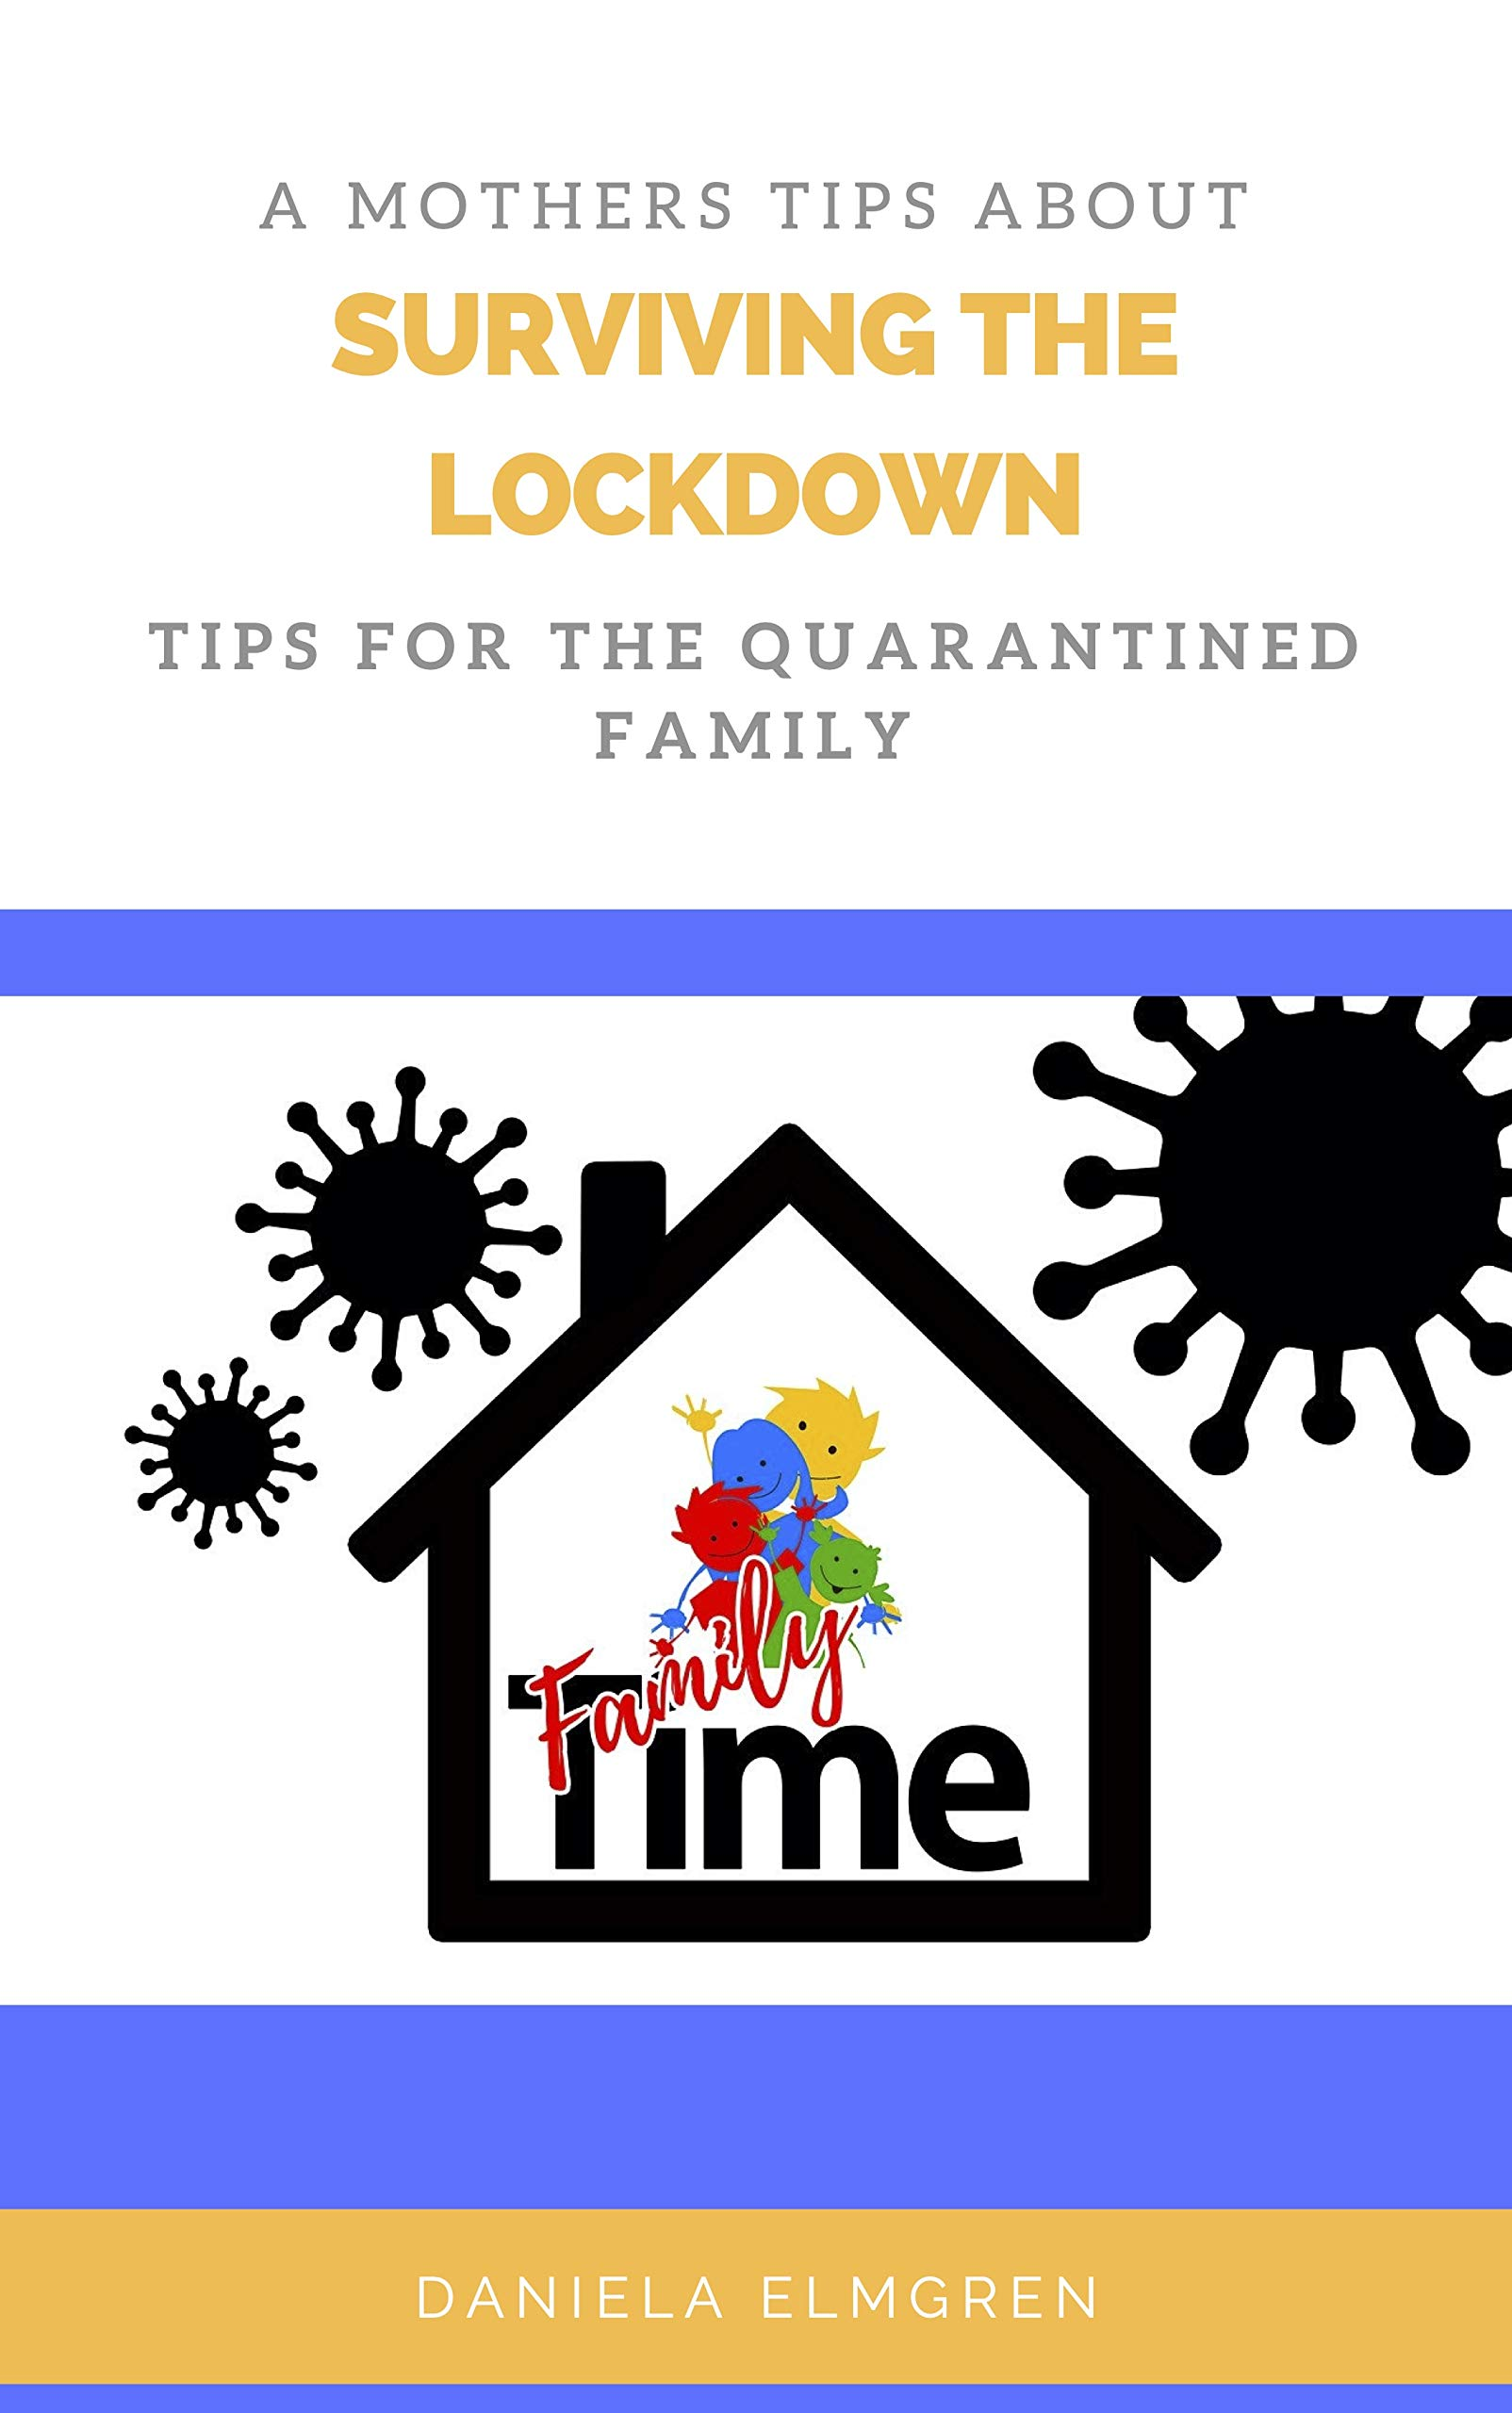 Surviving the Lockdown: A mother's tips for the quarantined family